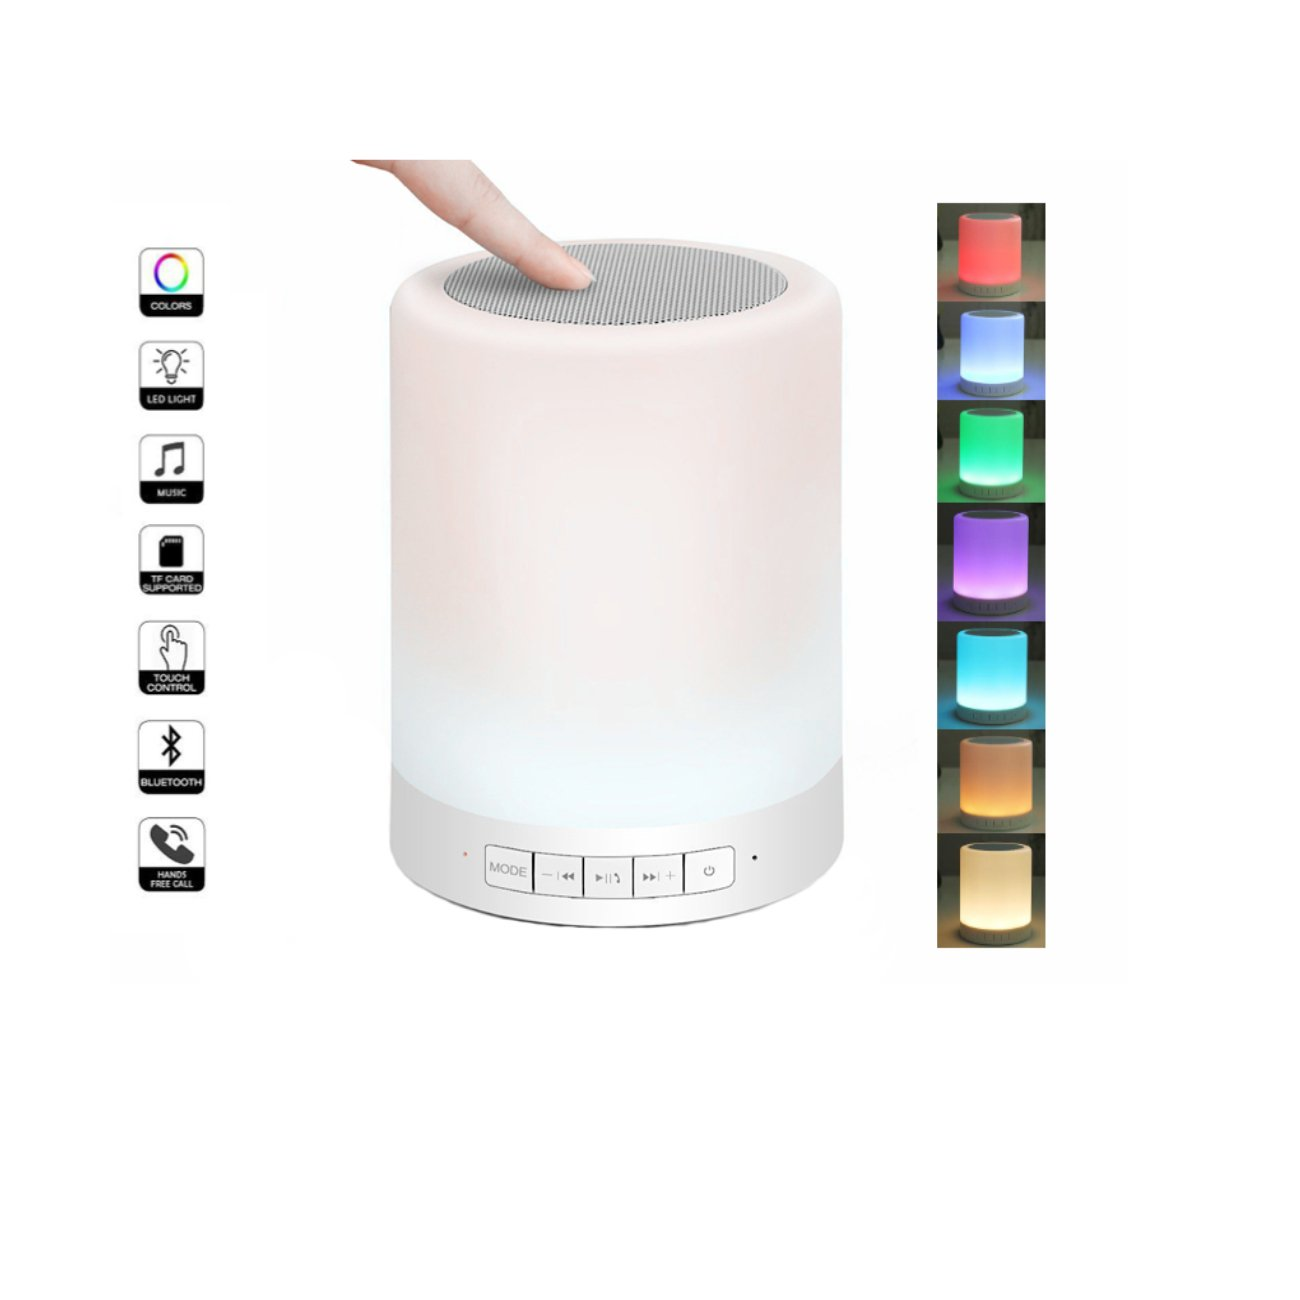 YIFENGHUI,Night Lamp,Wireless Bluetooth Speaker Touch Control 7 Color Transform Pattern,Hands-Free Speaker,Rechargeable LED Bluetooth Speaker,Suitable for Children's Room, Outdoor Or Hiking (White)